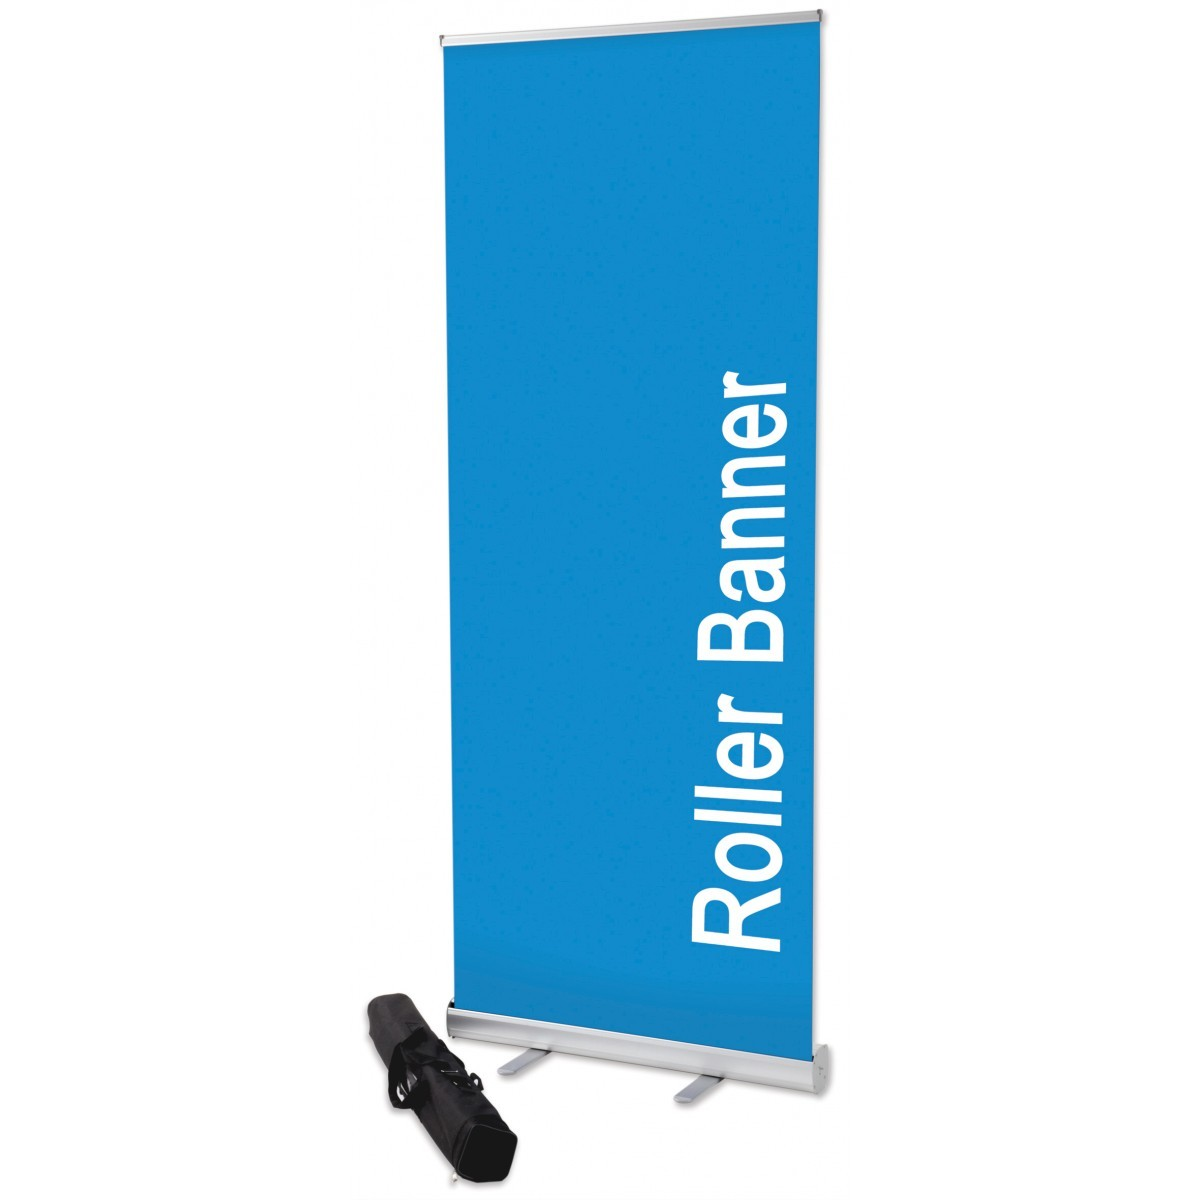 Budget Roll Up Banner  24 hr printing printing sameday printing printer near me printing